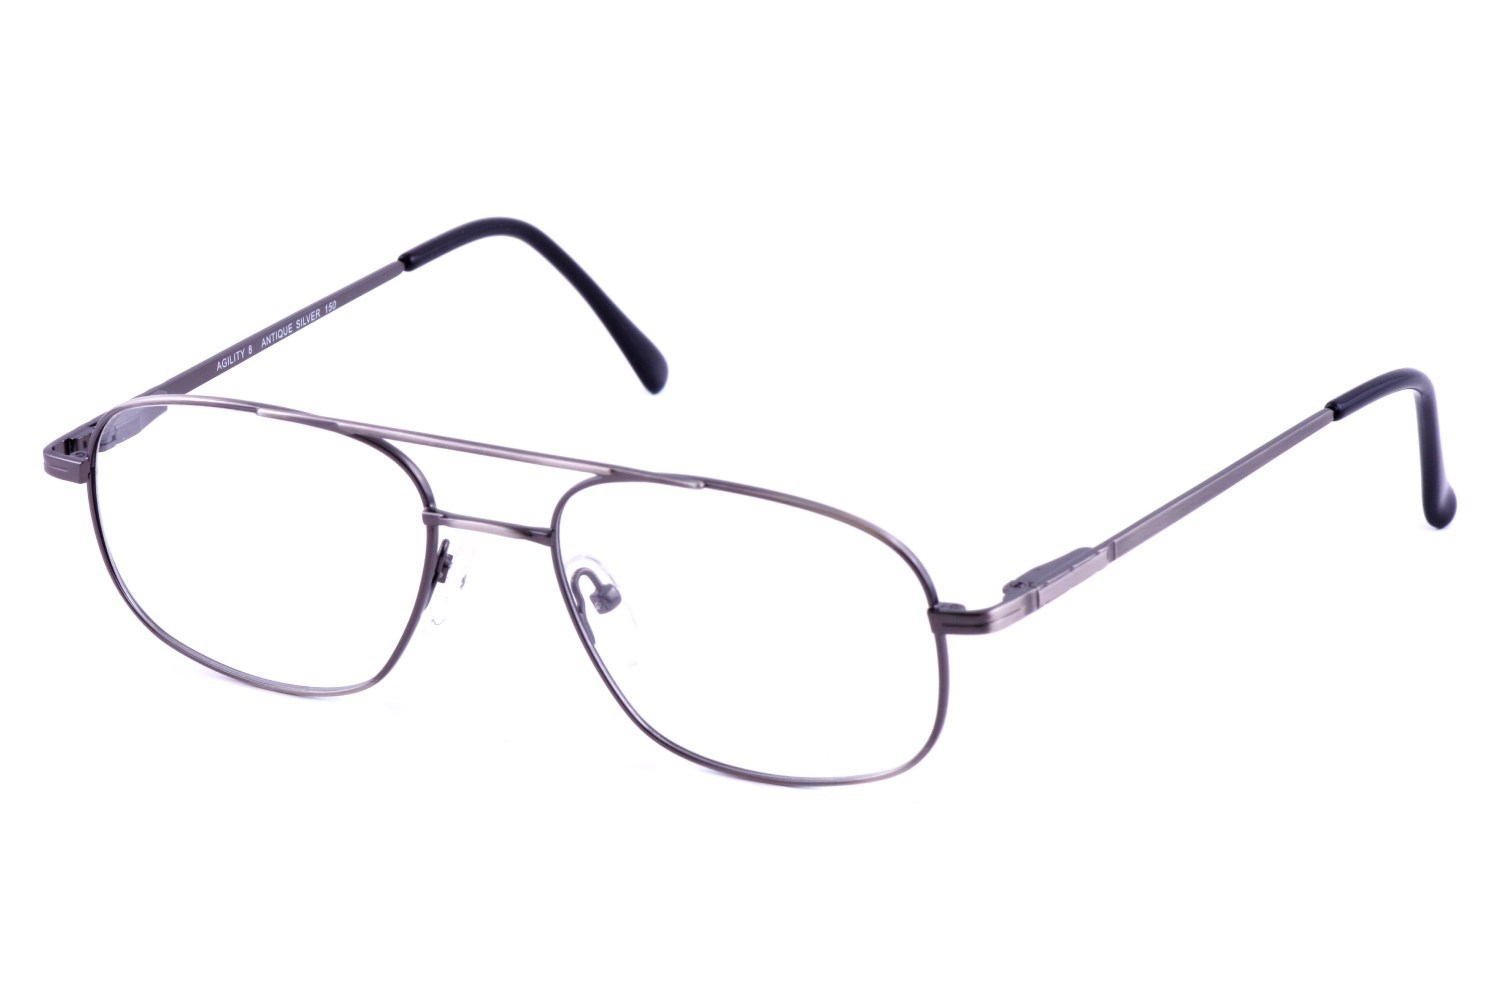 Agility 8 Prescription Eyeglasses Frames